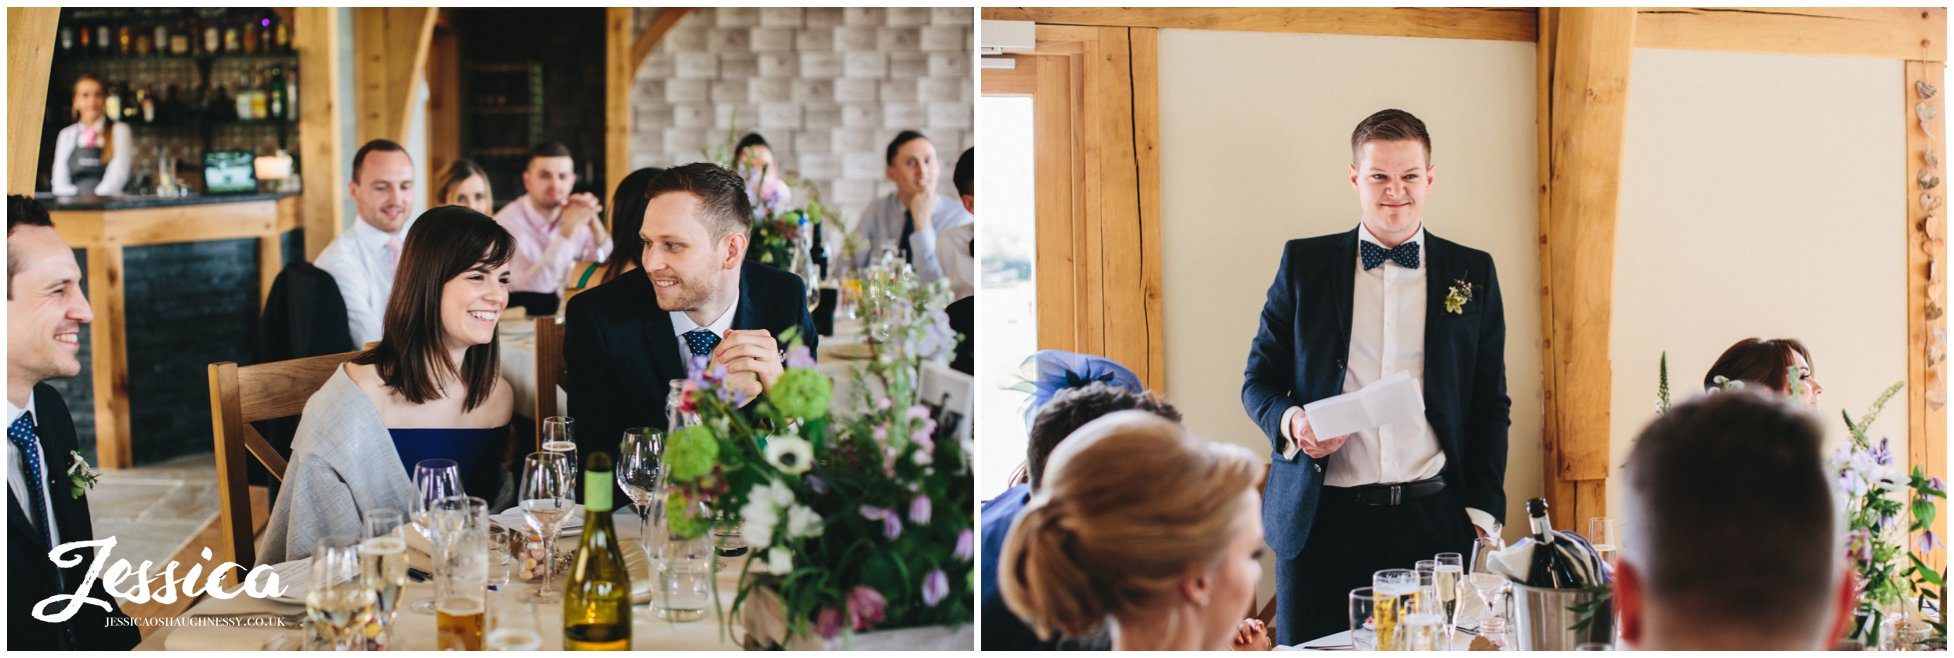 the groom's speech on his wedding day in north wales